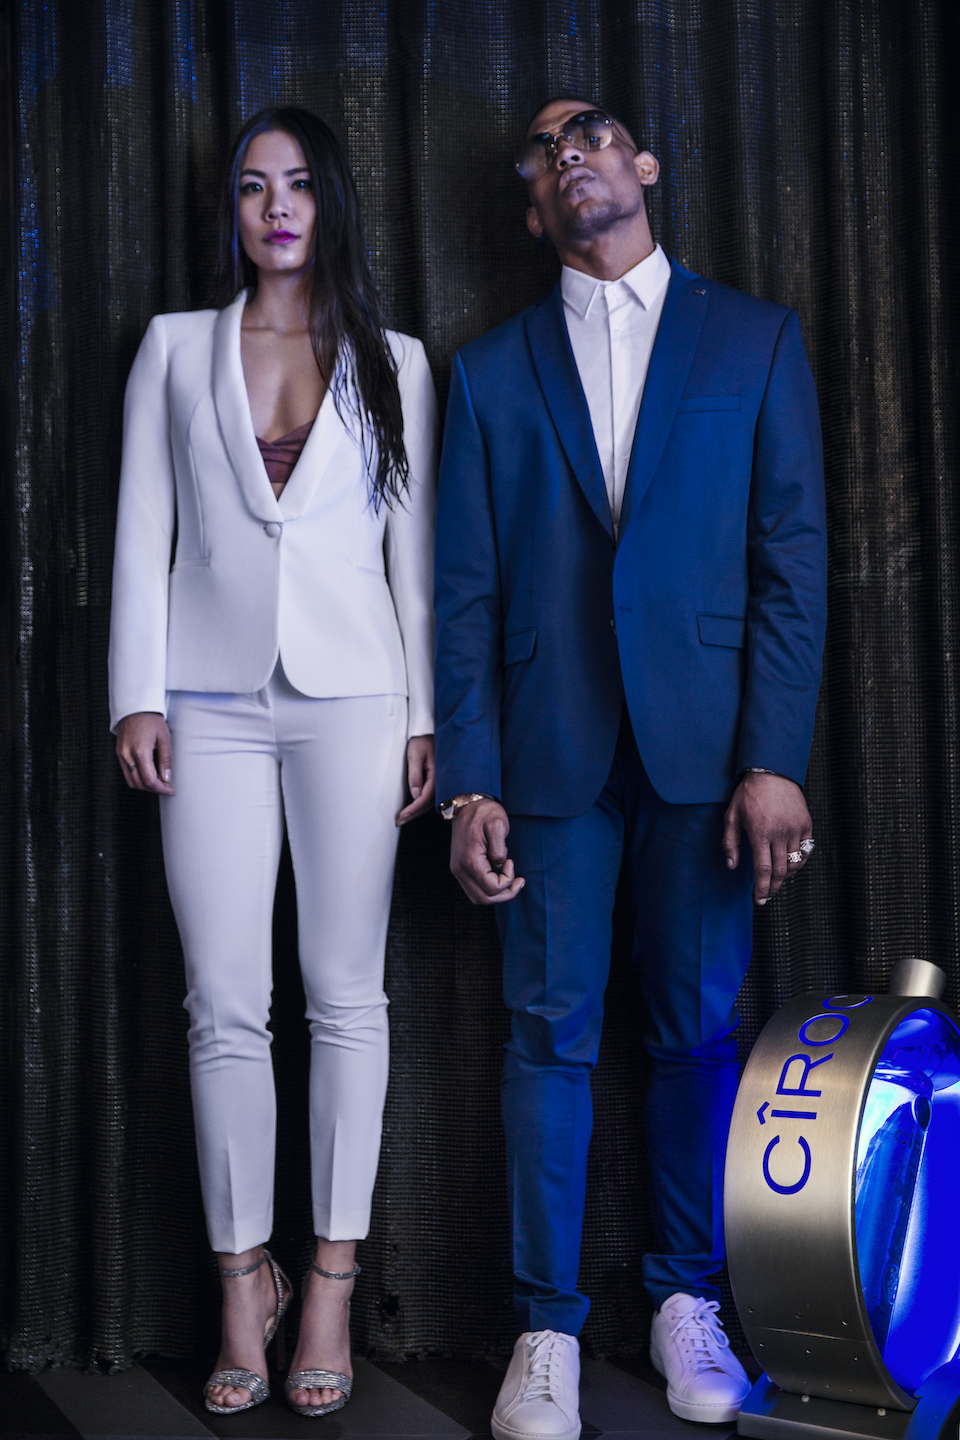 Male And Female Model Standing In London Club Styled In High Fashion Next To Ciroc Vodka Bottle